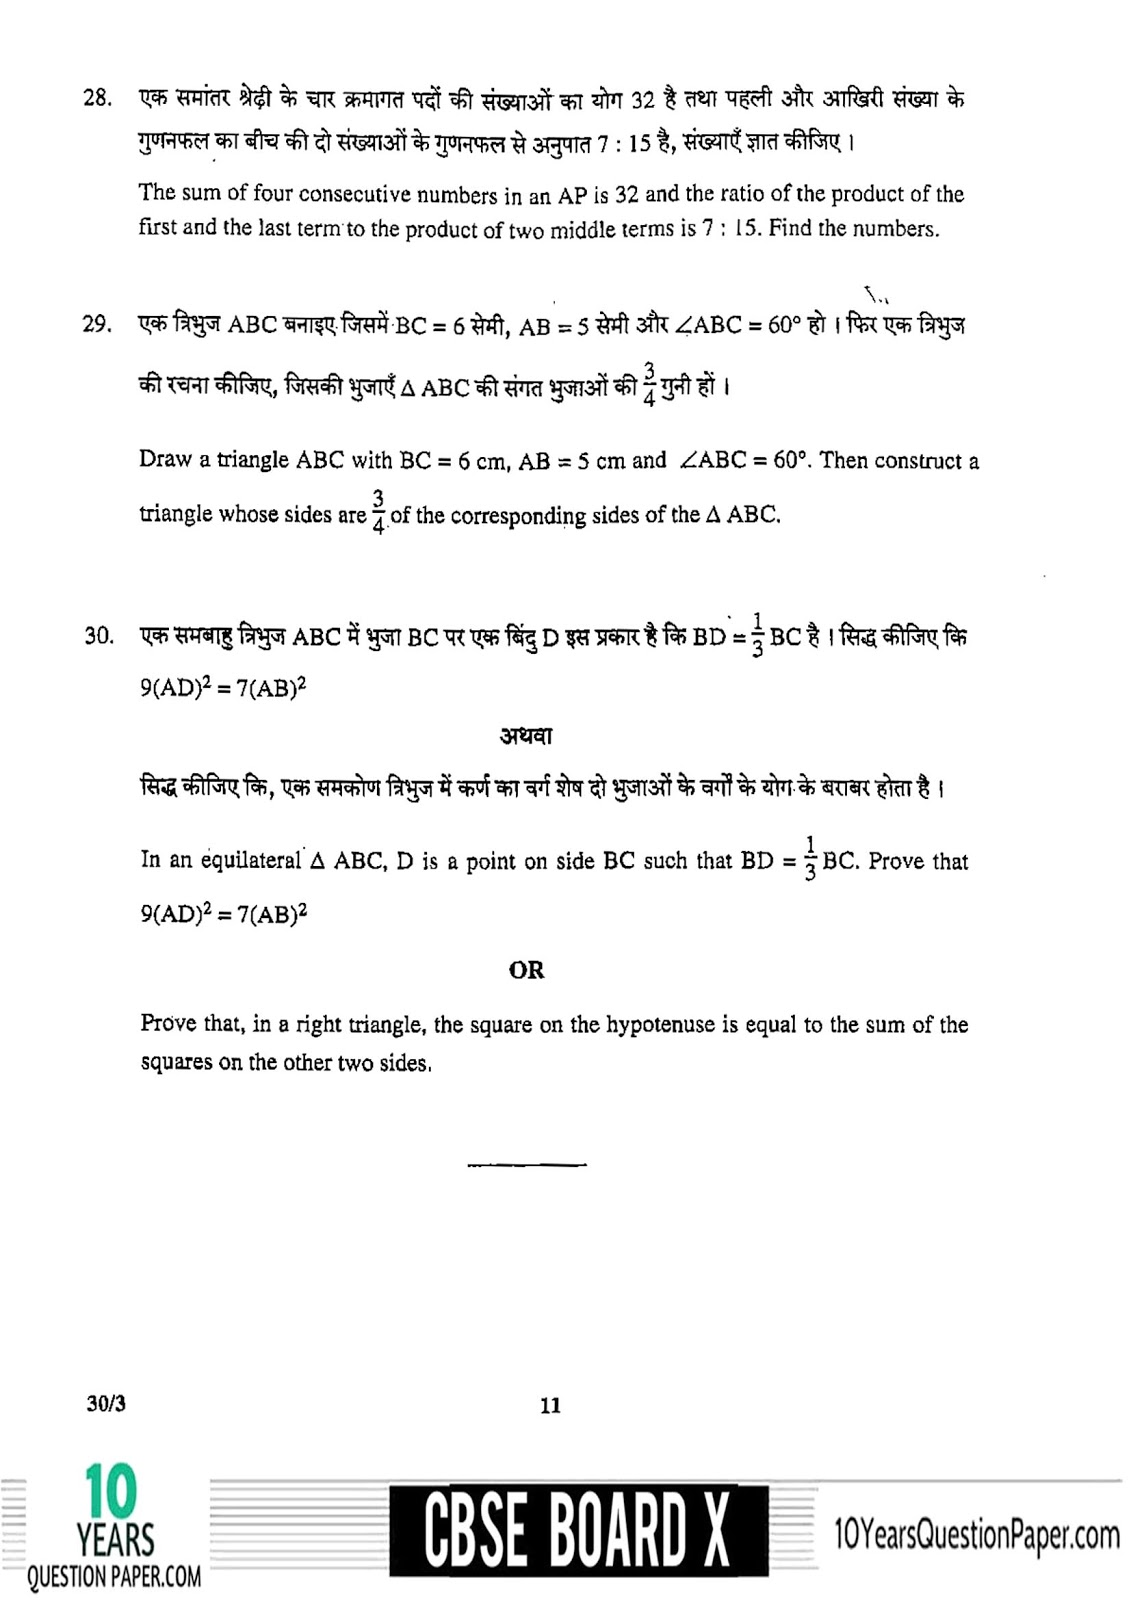 CBSE Board 2018 Maths Question paper Class 10 Page-11